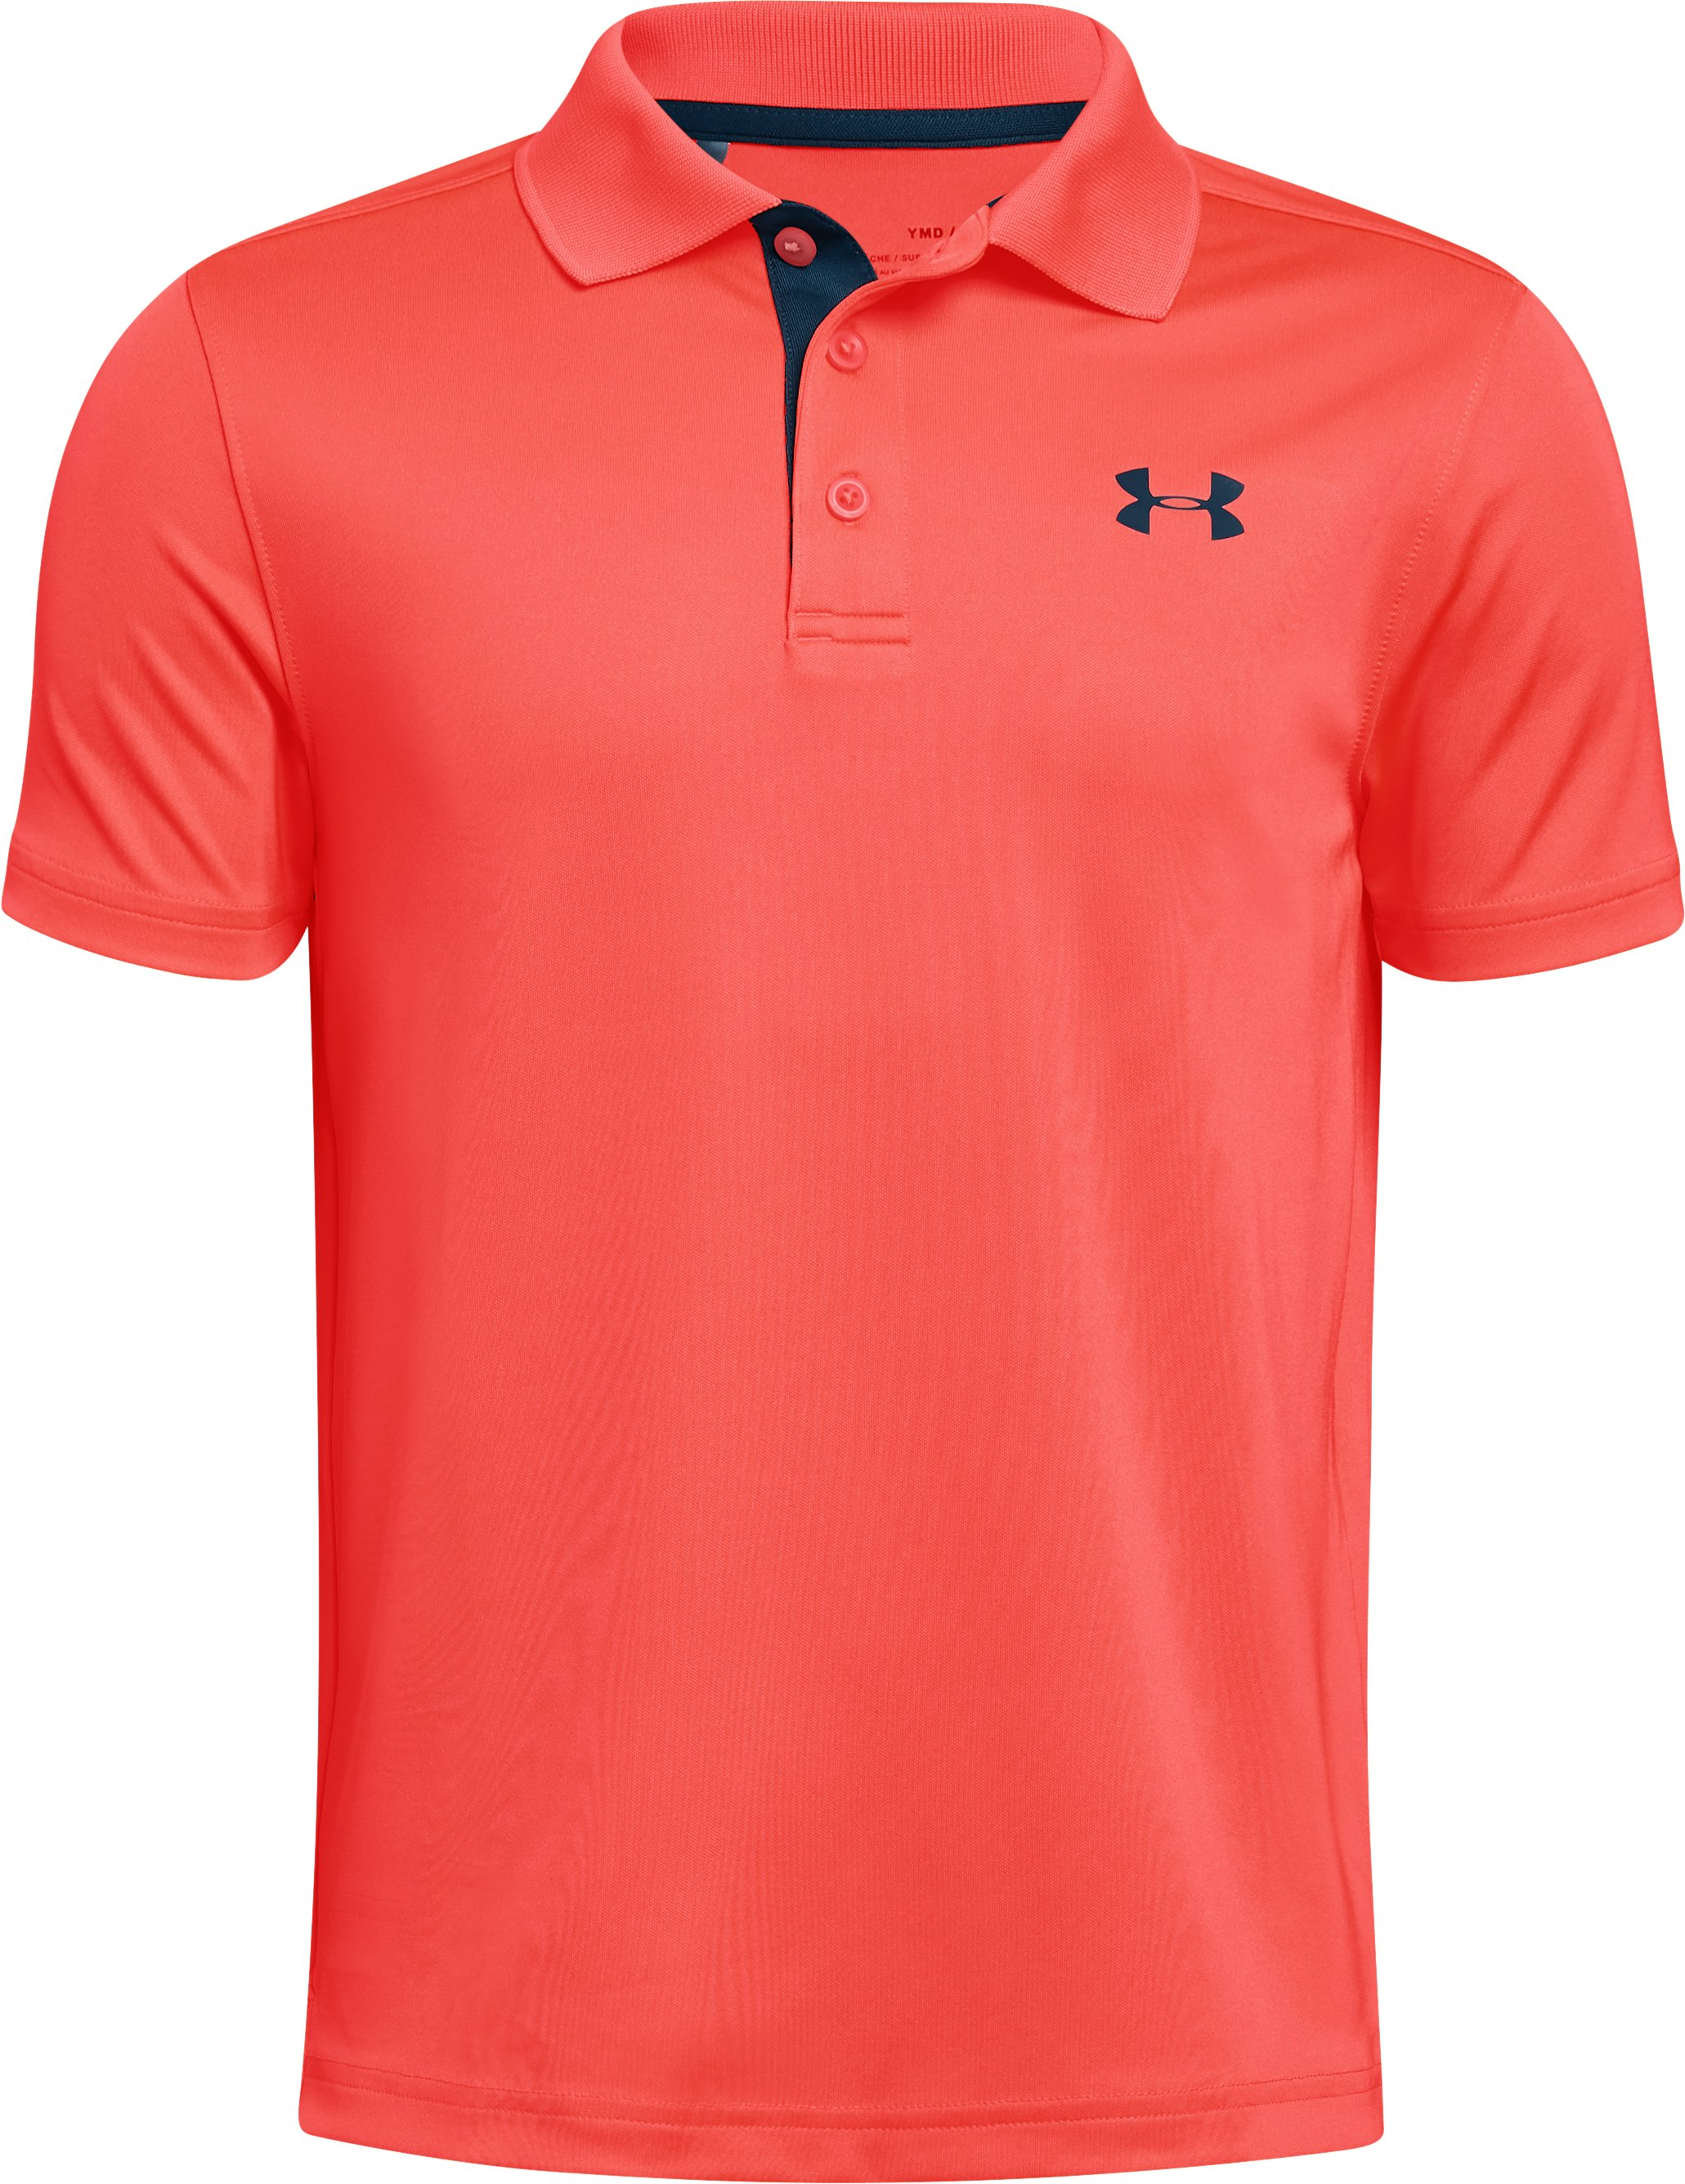 Boys' UA Performance Polo, AFTER BURN